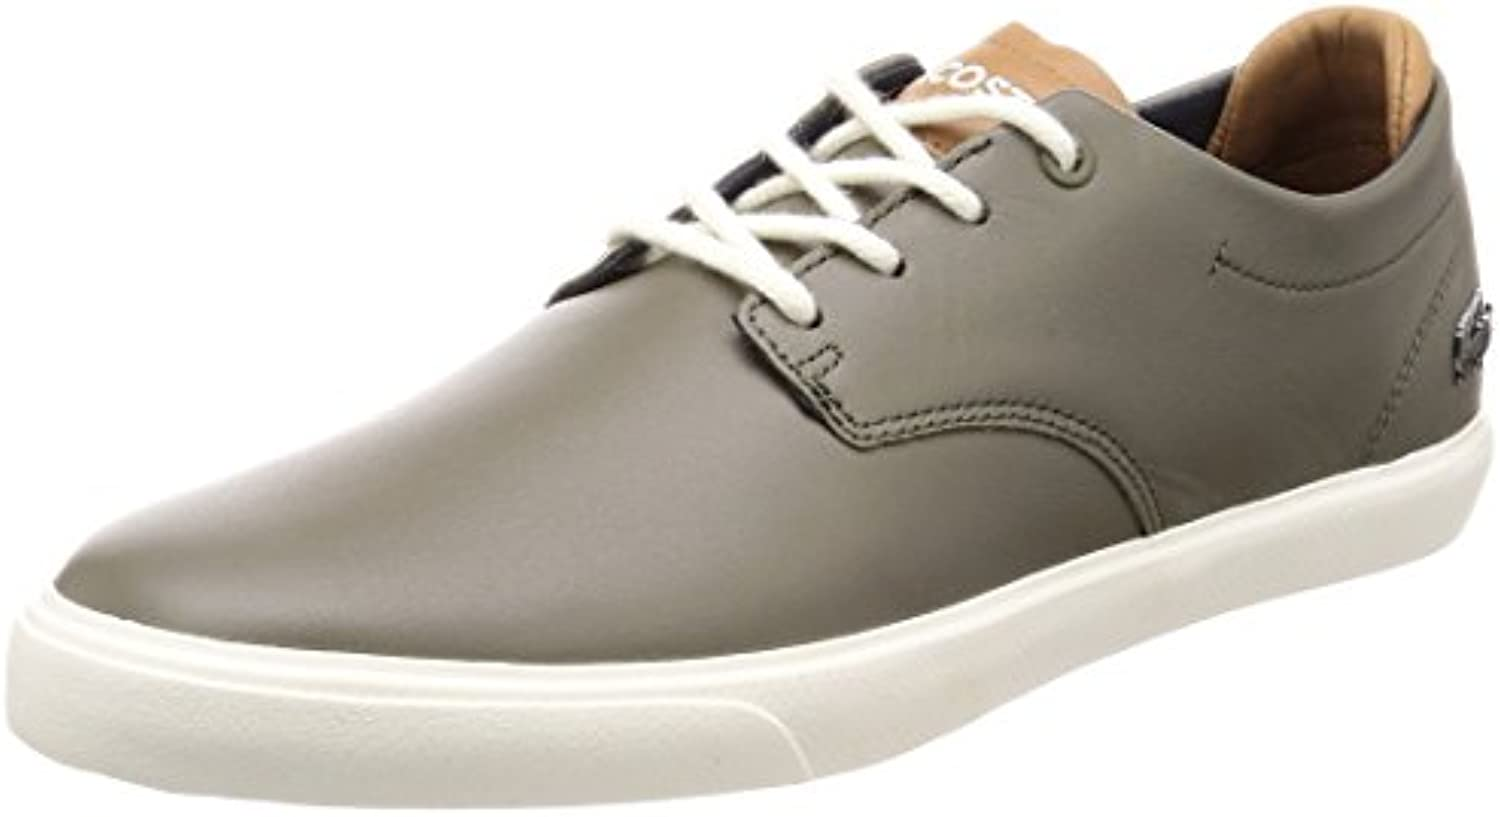 Lacoste Men's Esparre 118 1 Sneakers Shoes